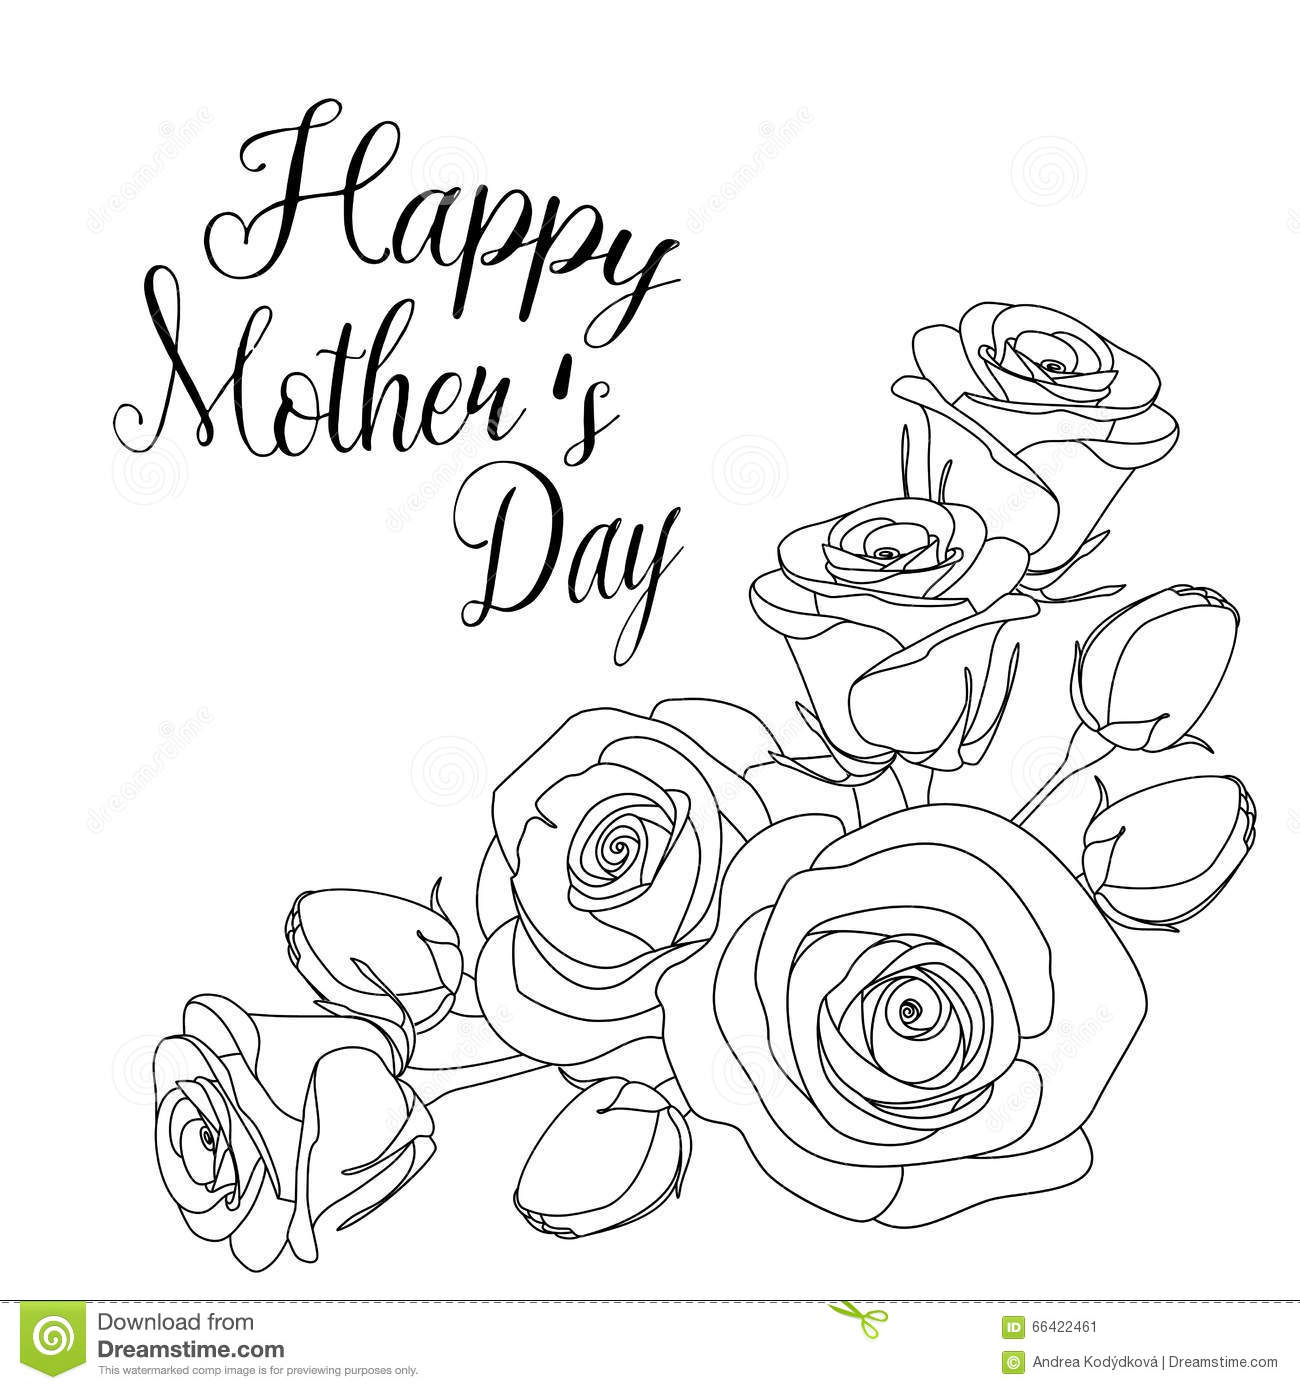 Mothers Day Greeting Card With Roses Coloring Page For